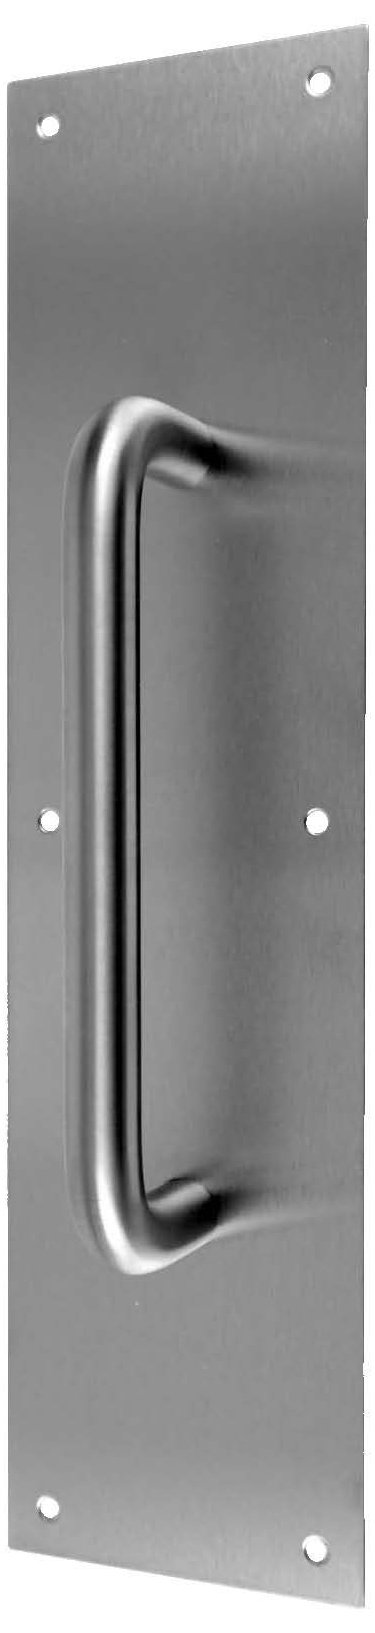 Don-Jo 7015 Aluminum Pull Plate with 3/4'' Round Pull, Satin Anodized Aluminum Finish, 3-1/2'' Width x 15'' Height by Don-Jo